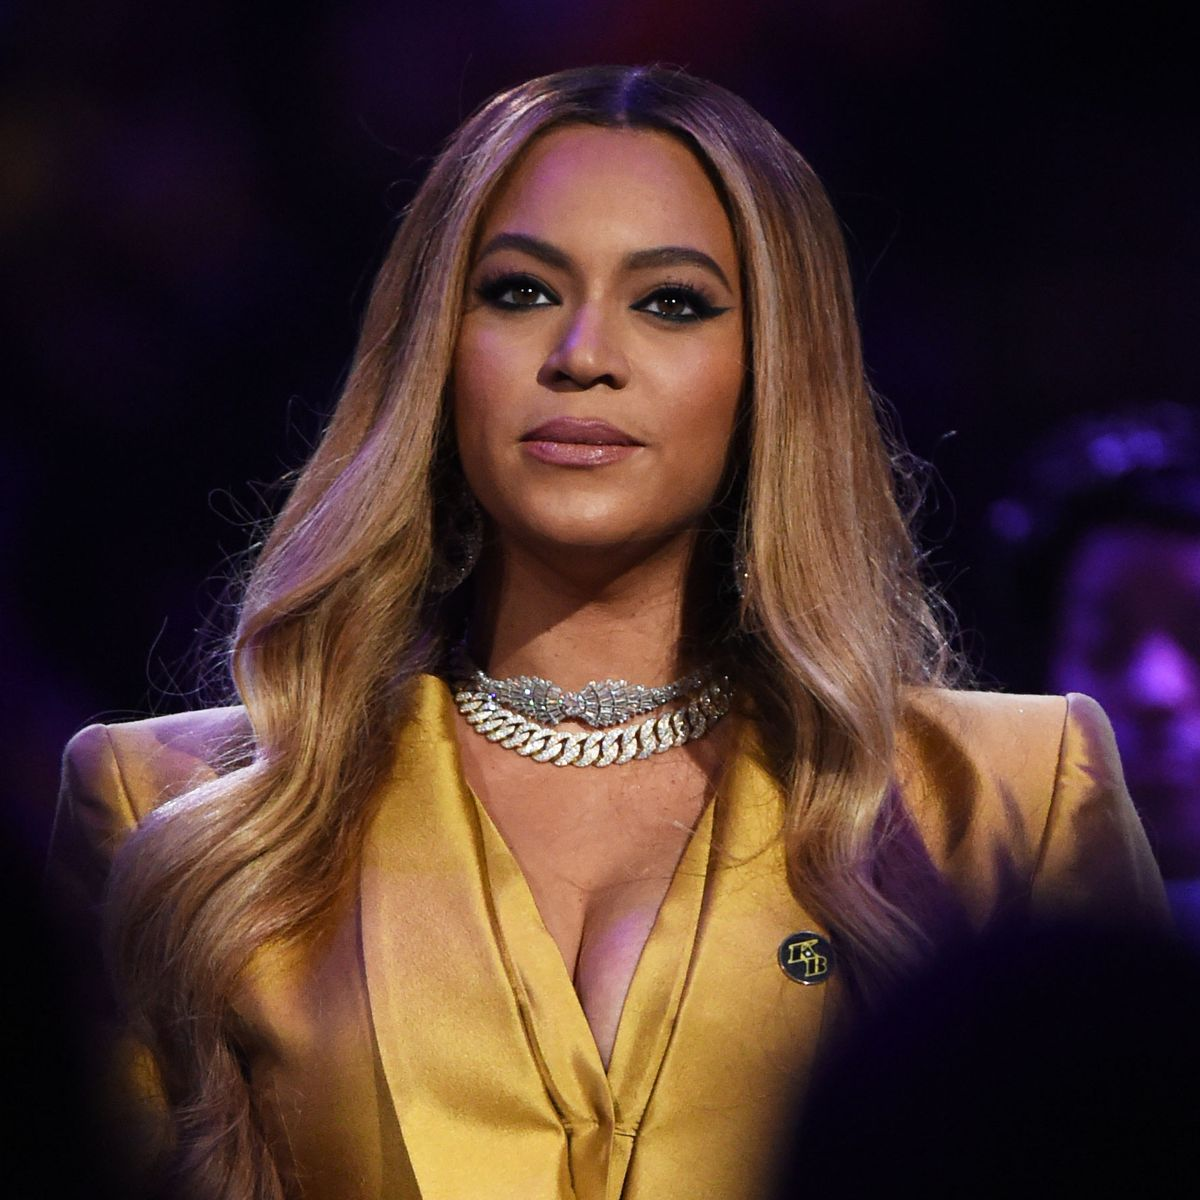 Beyonce Calls To Endsars As Protests Continue In Nigeria